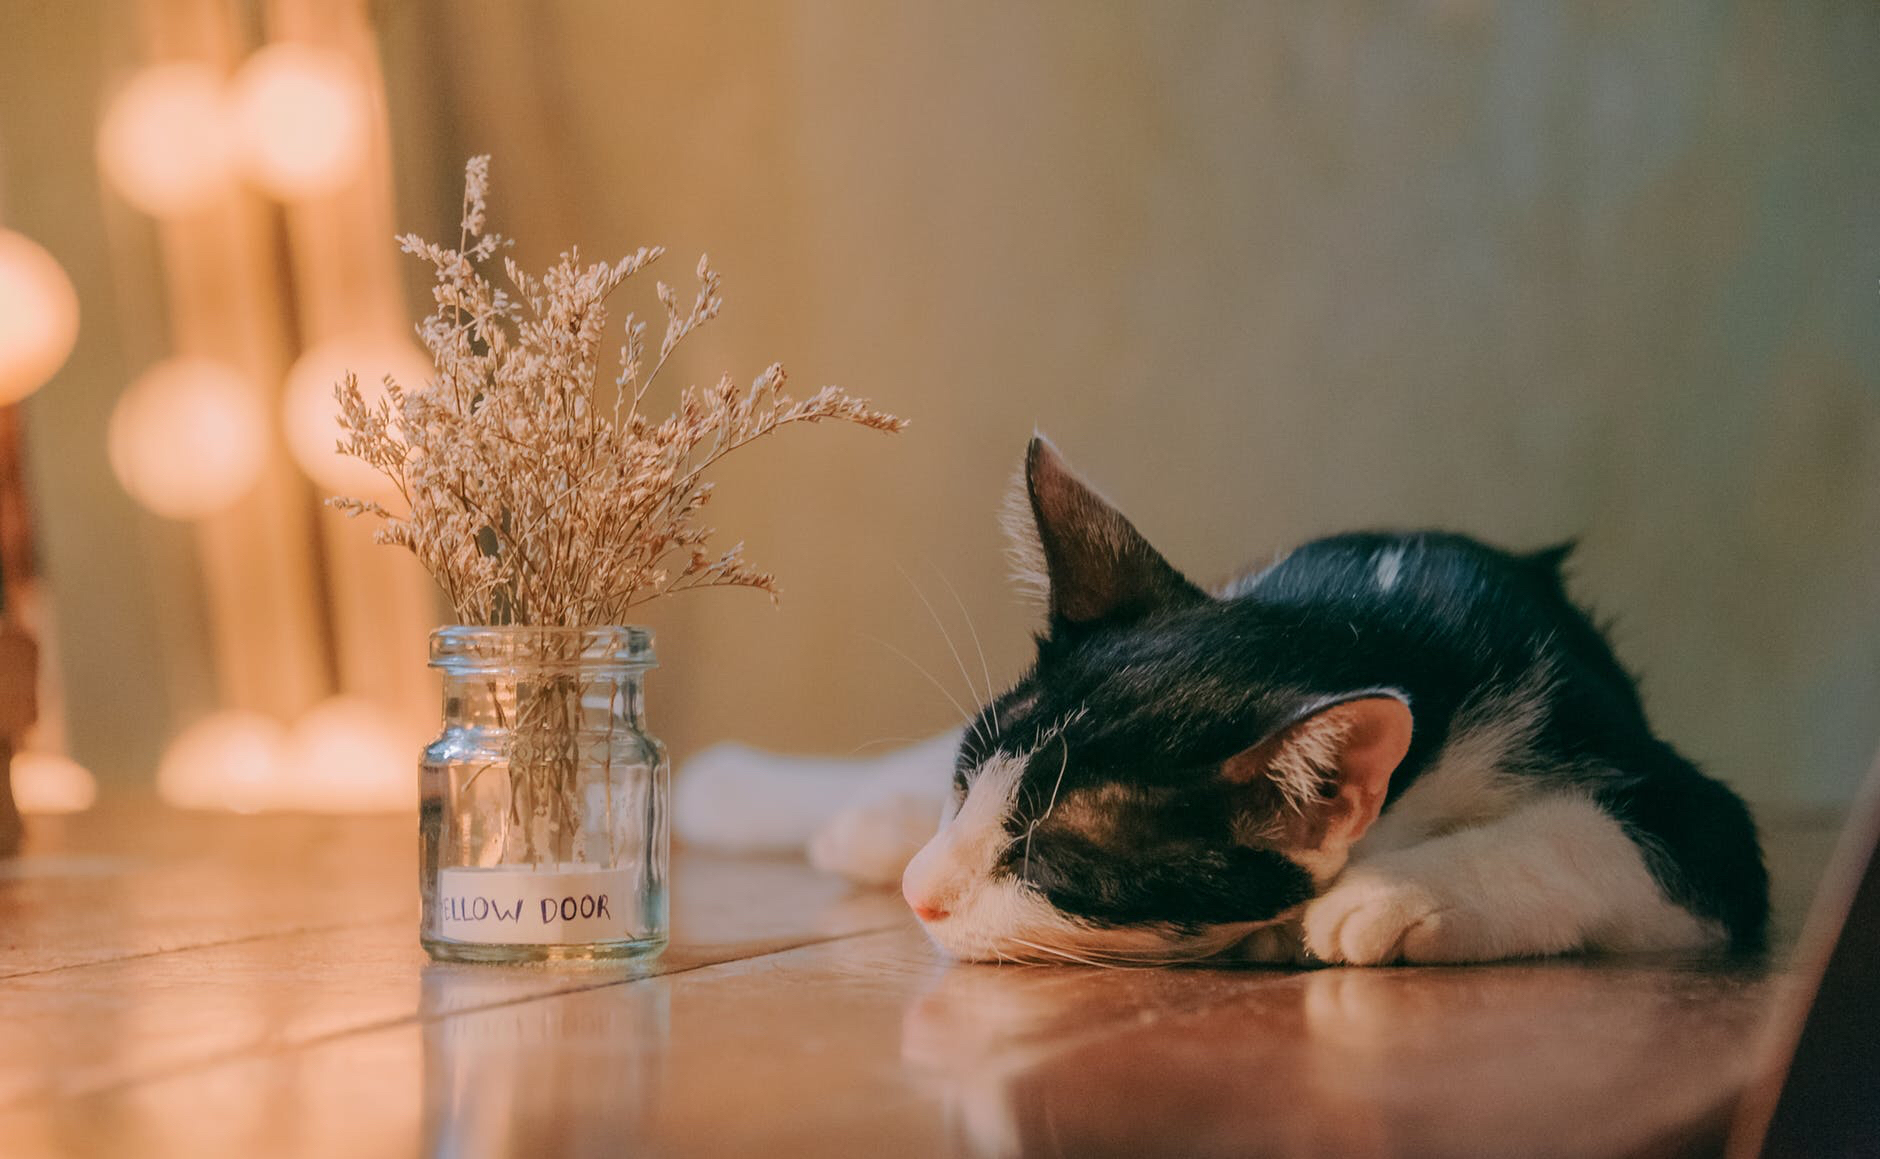 Black and white cat asleep on a table with a vase of small white flowers